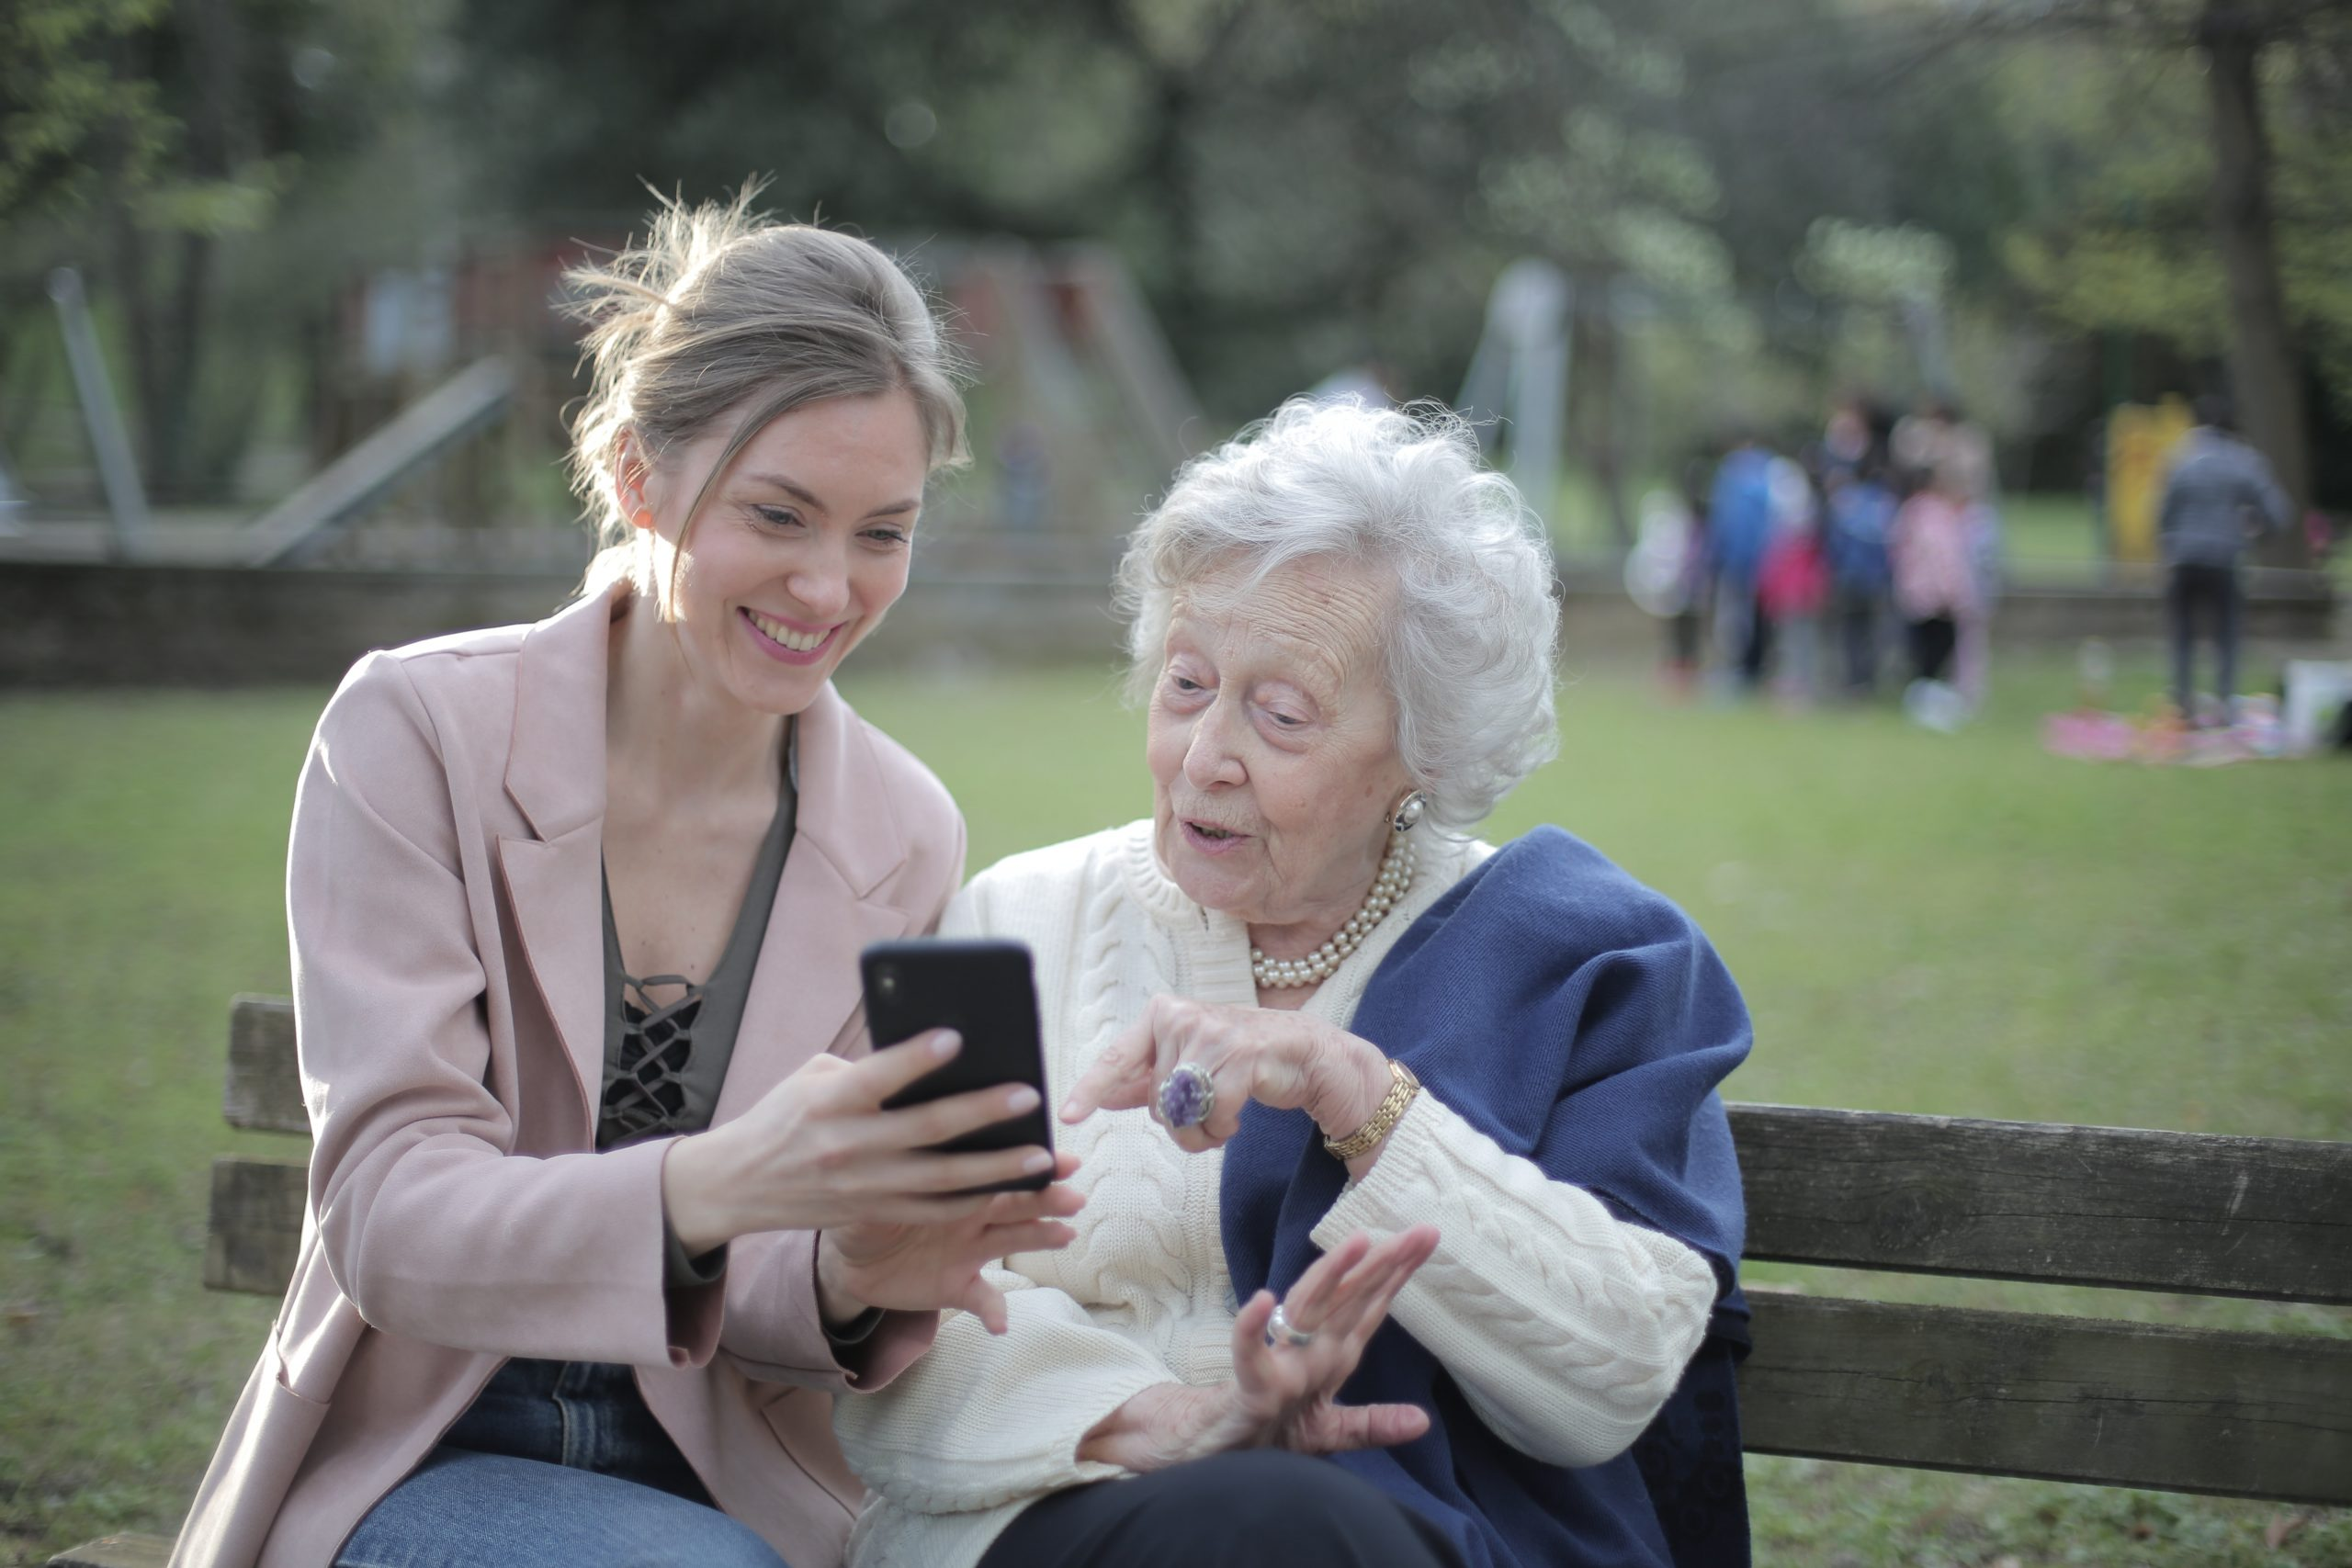 How to work with aging adults